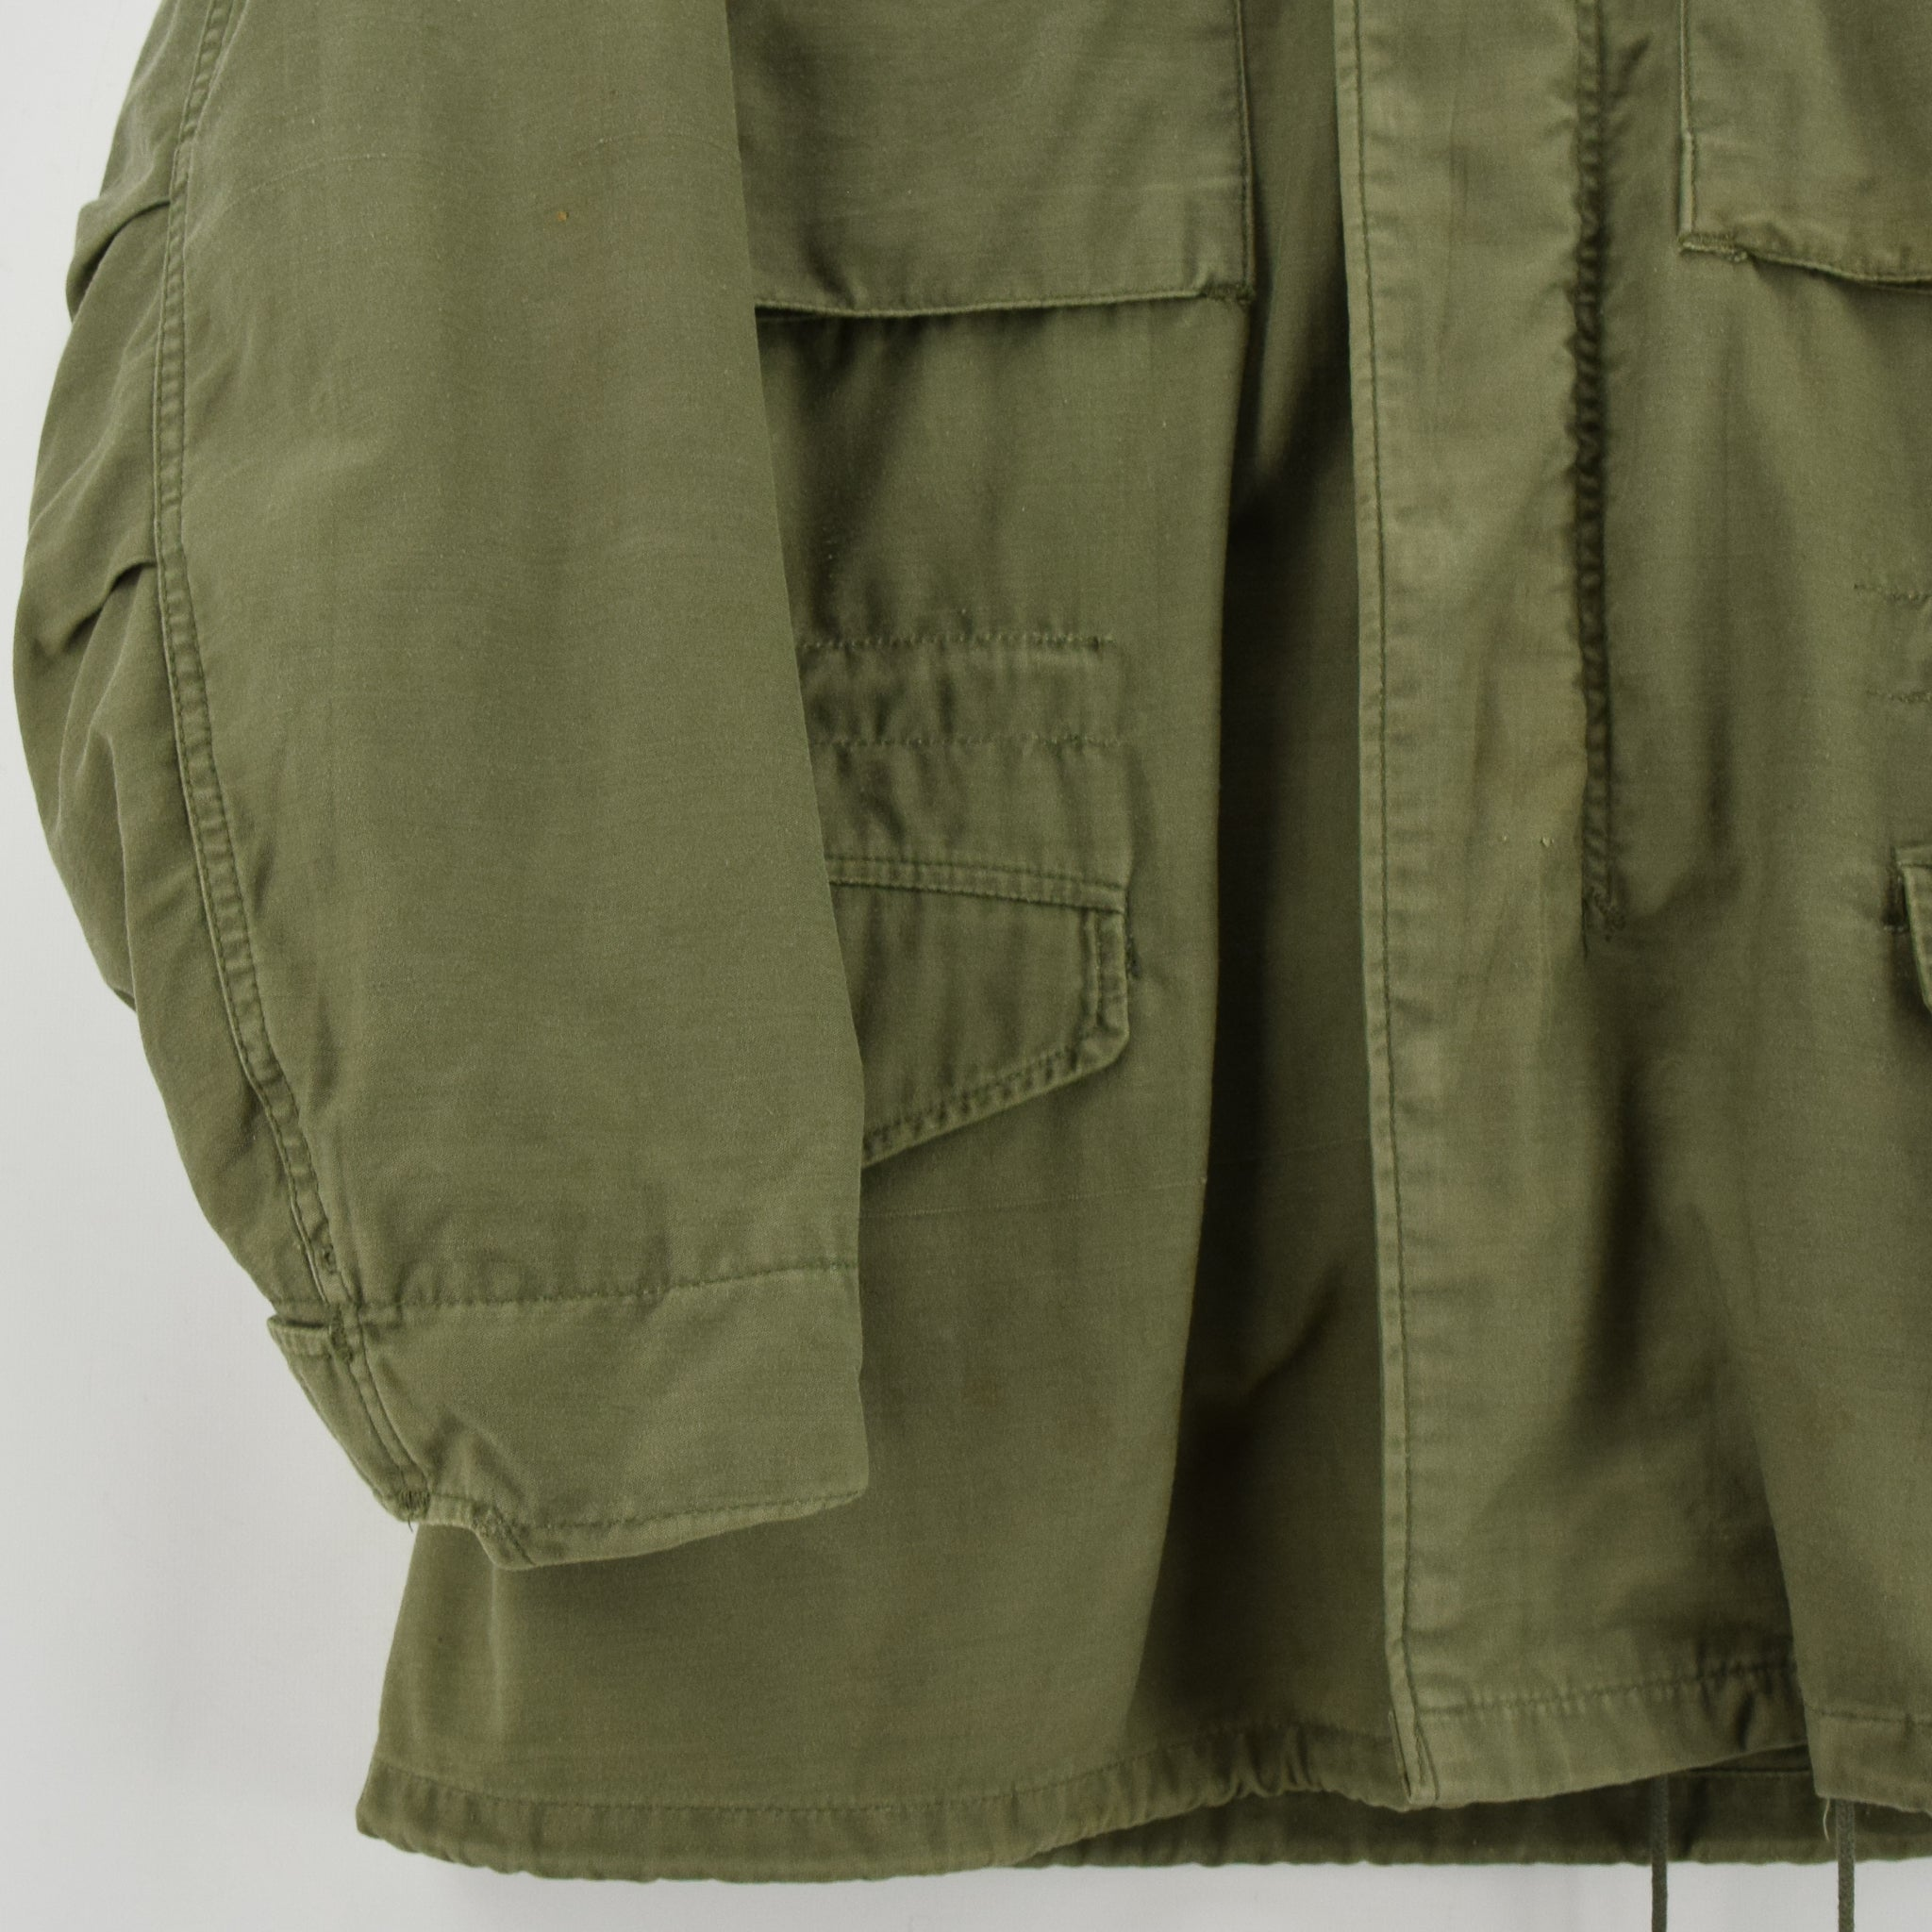 Vintage 80s Alpha Industries M-65 Green Coat Cold Weather Man's Field Jacket S front hem